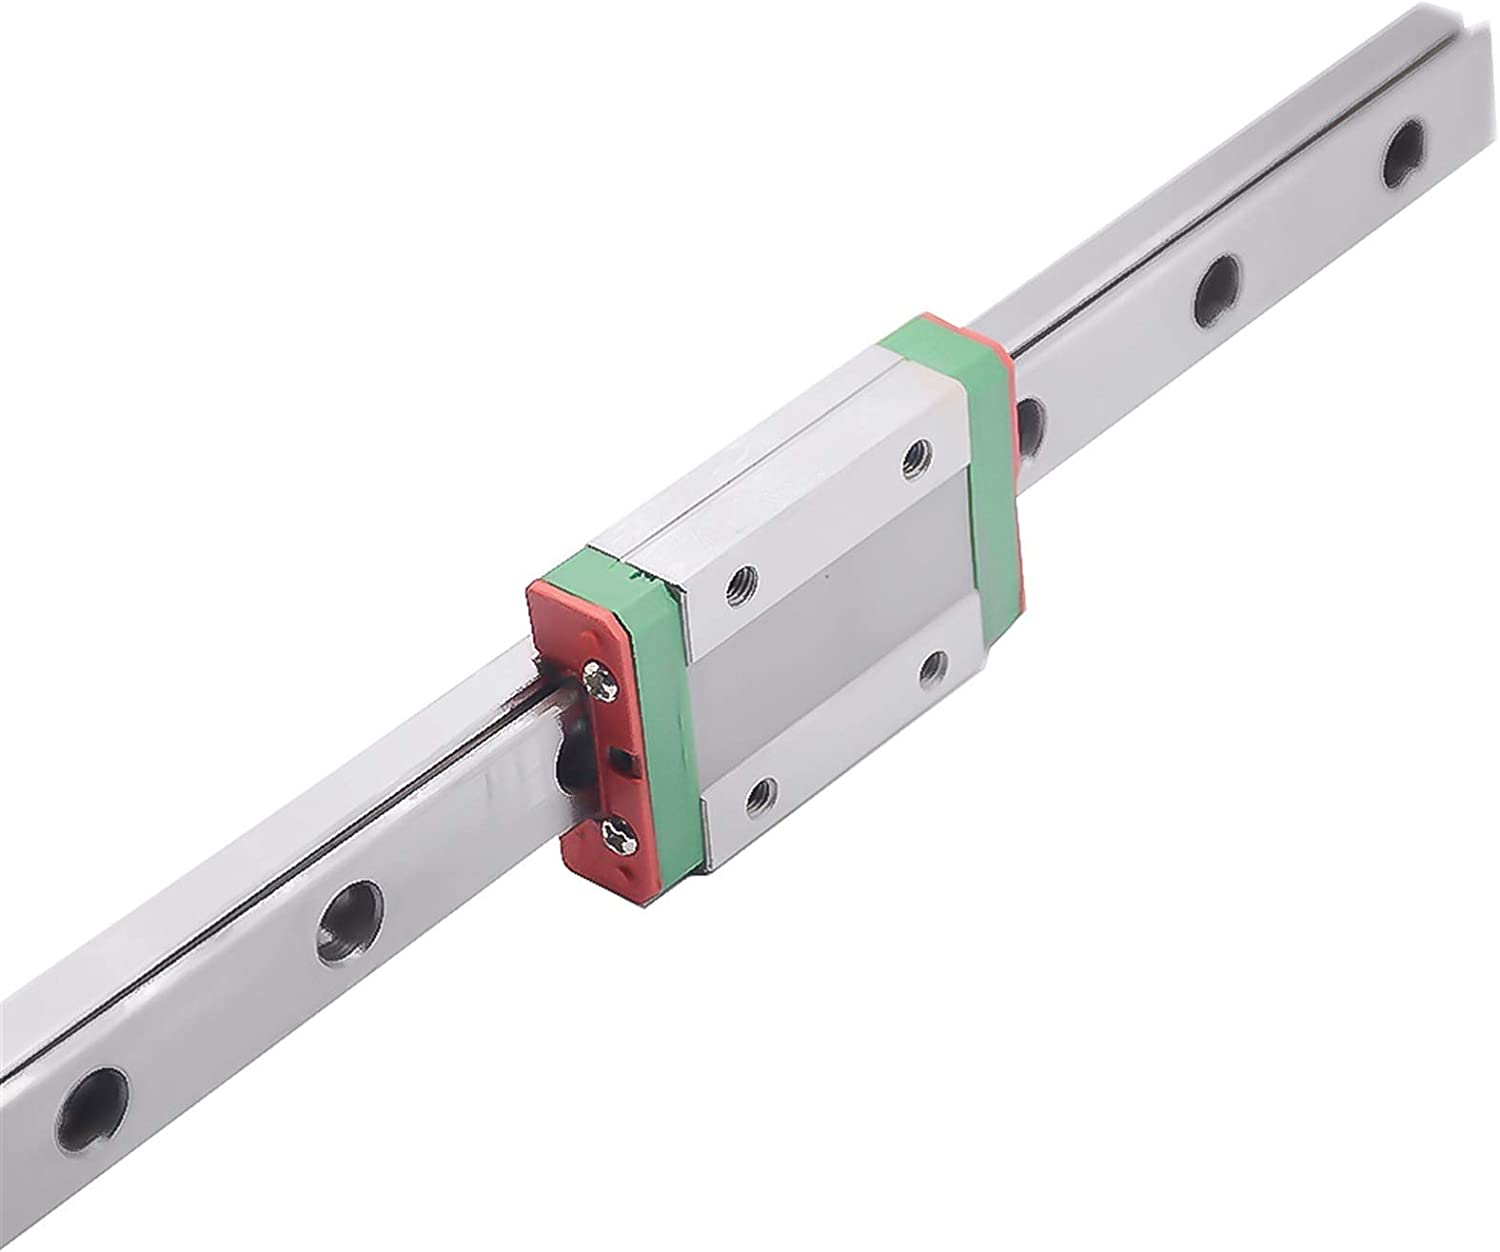 New color SHENYF Linear New sales Rail MGN MGN7 MGN12 MGN15 350 300 MGN9 400 500 450